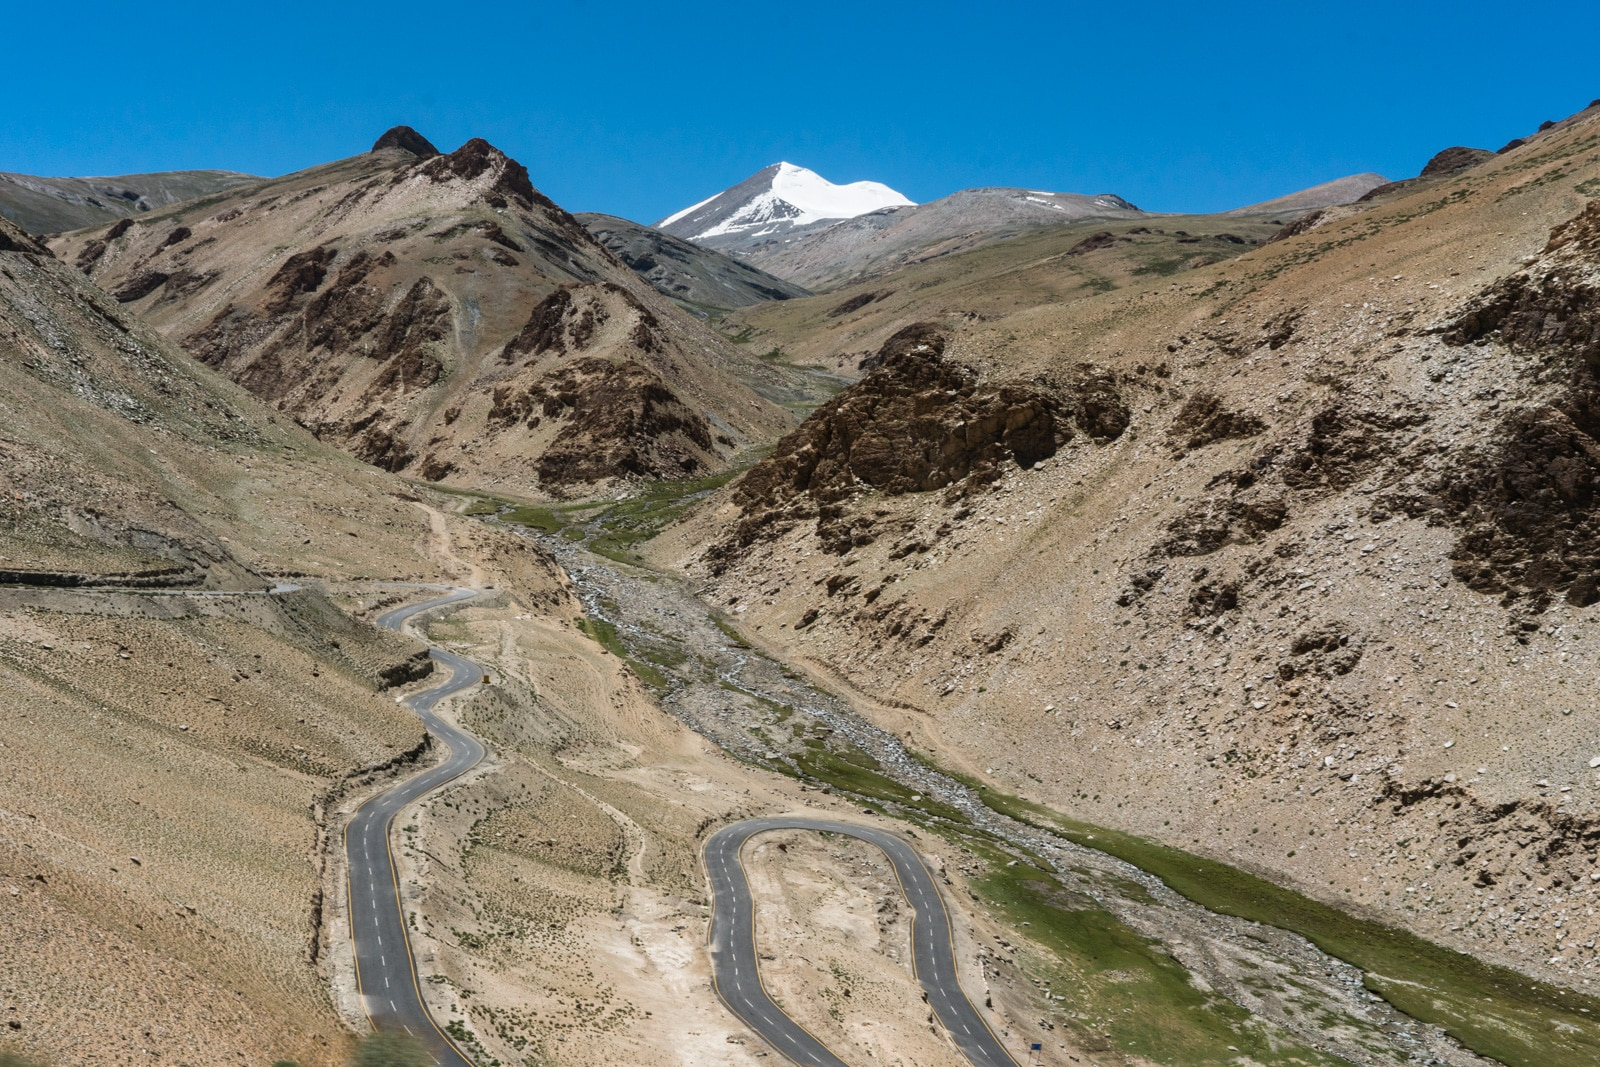 Hitchhiking the Leh - Manali highway - The winding road up to Taglang La Pass in Ladakh, India - Lost With Purpose travel blog